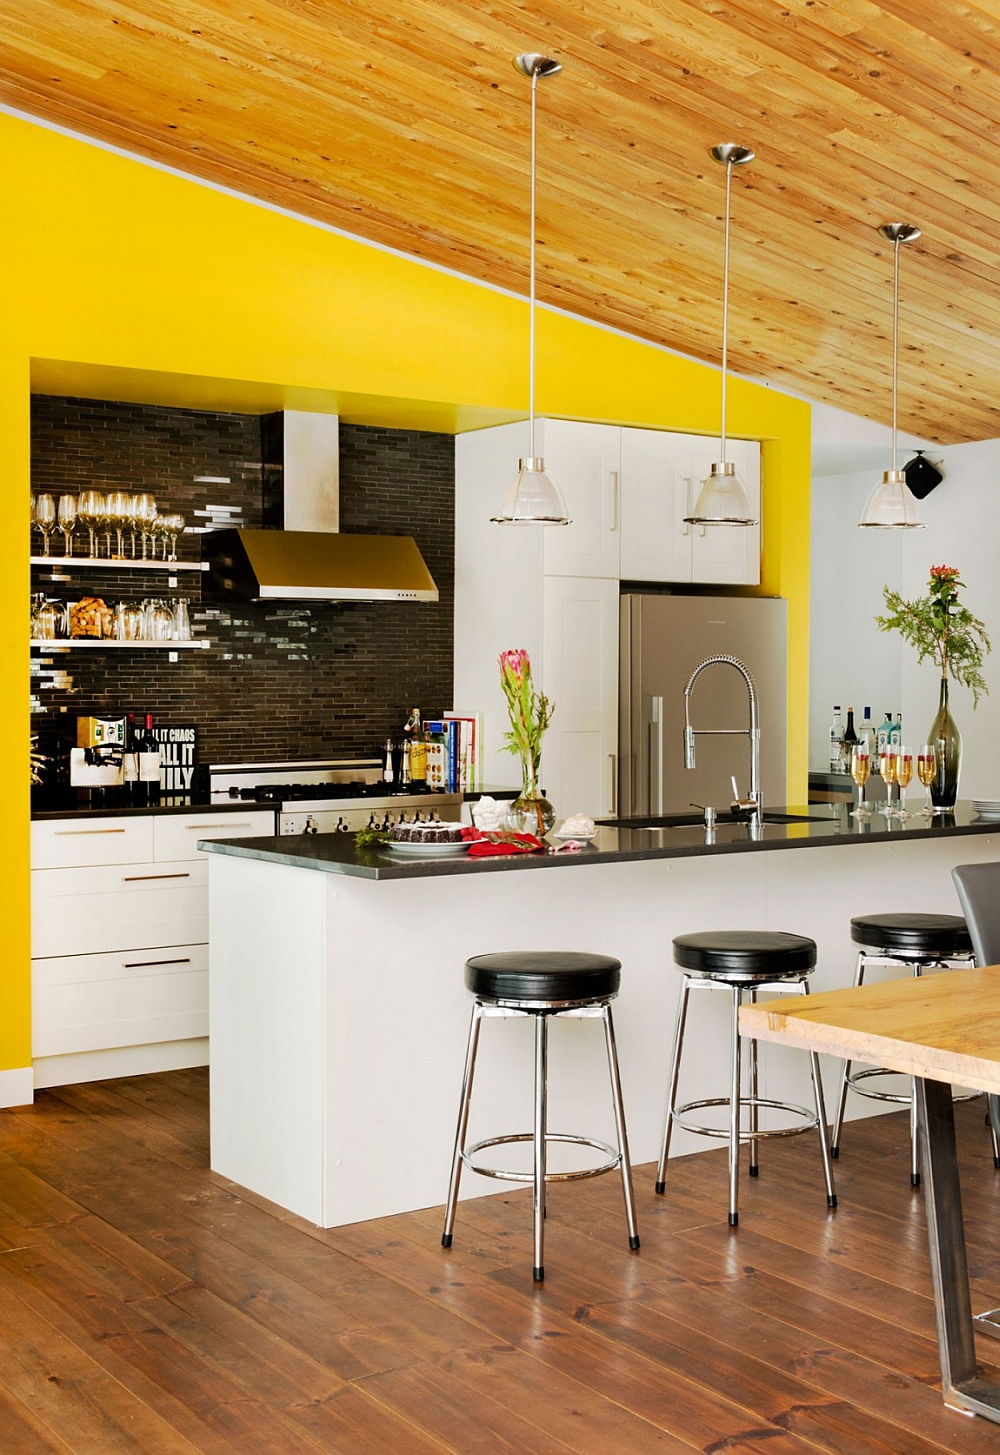 Black and white kitchen with a pop of yellow